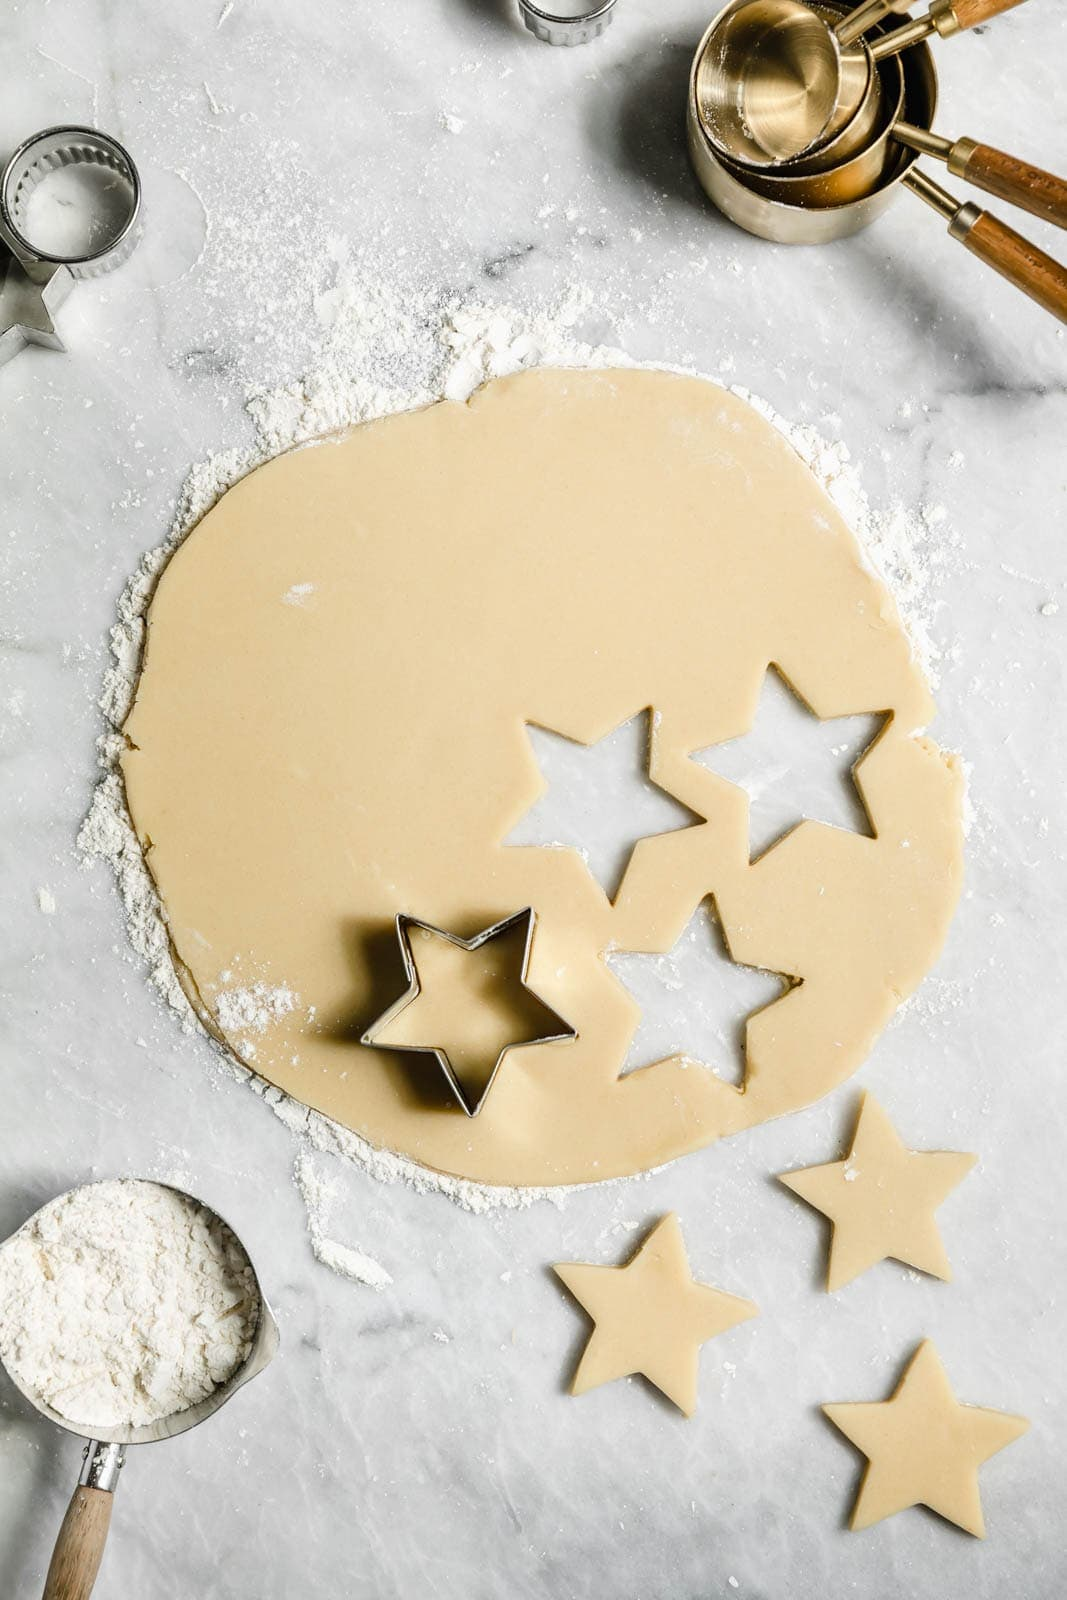 perfect cut out sugar cookies recipe rolled out on a floured surface